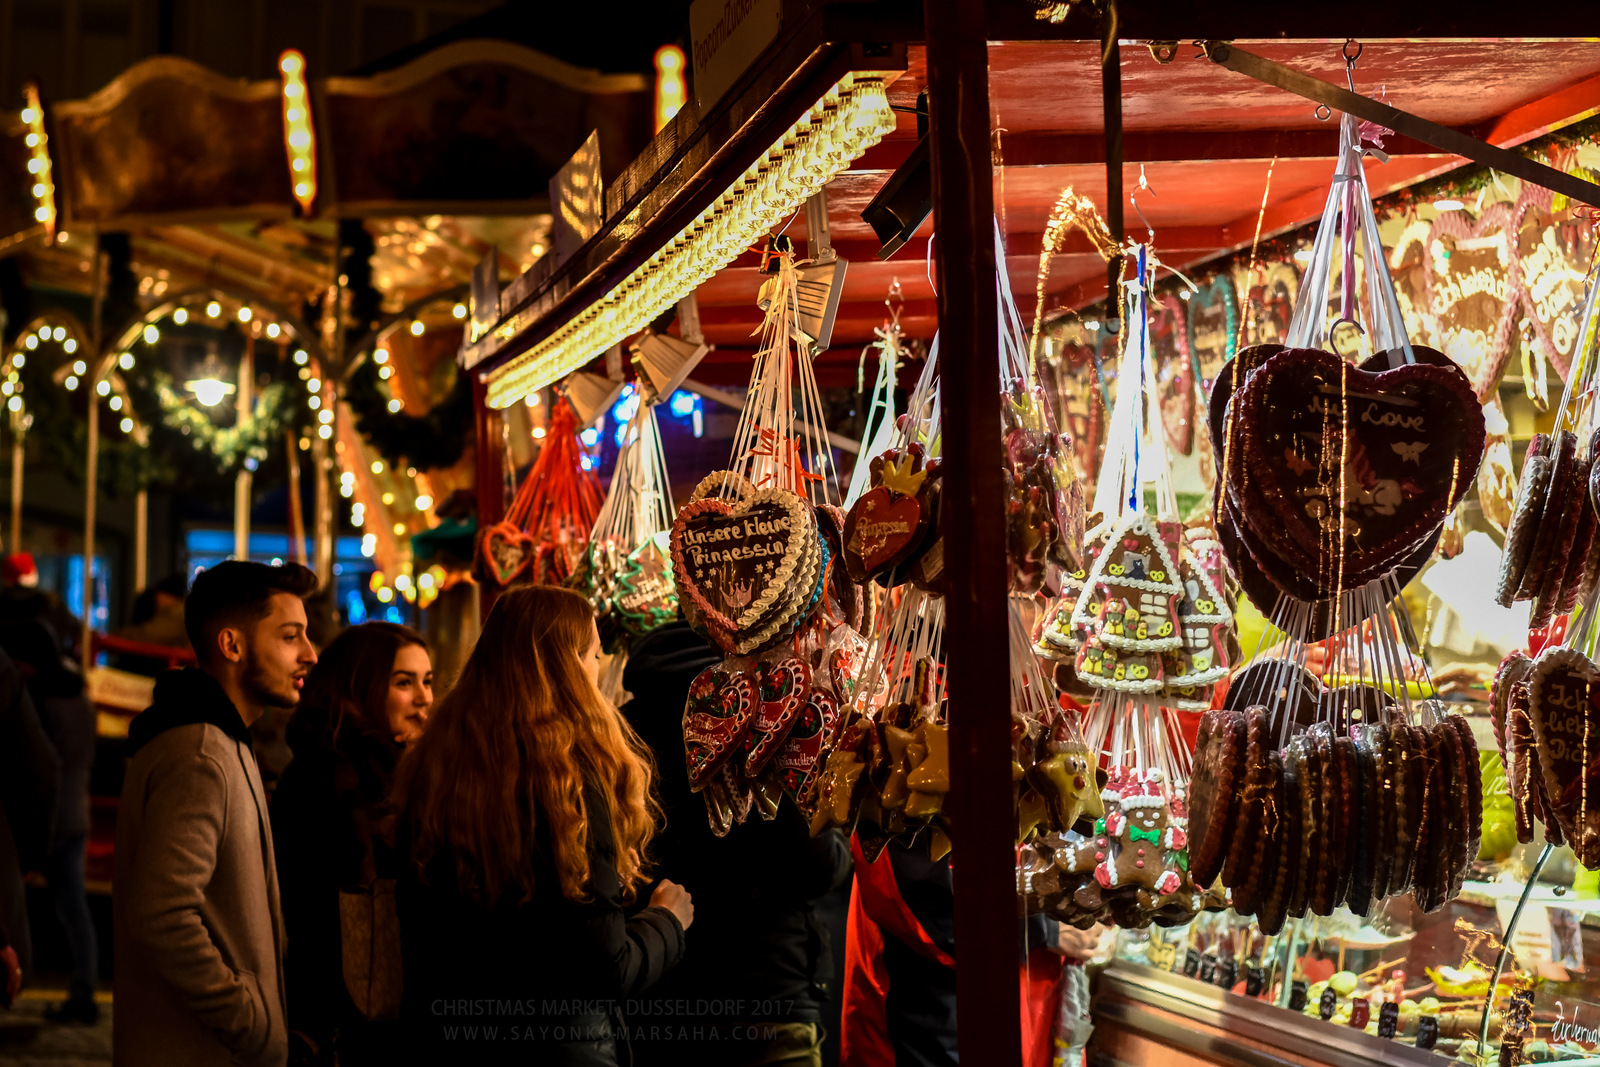 Evening Stories: Düsseldorf Christmas Market